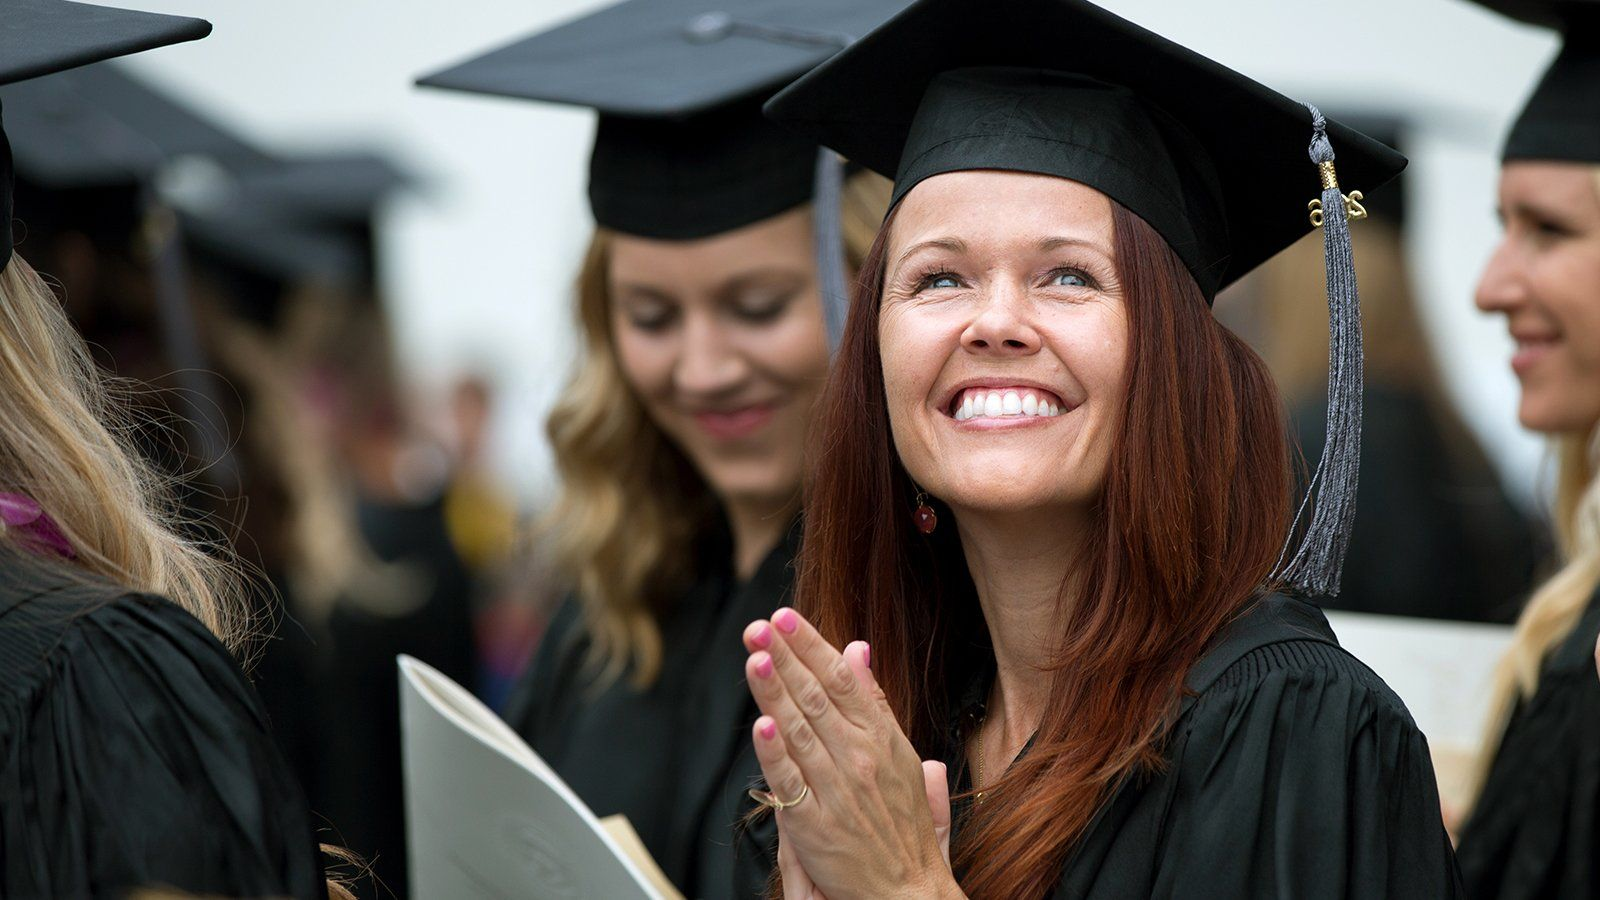 A female graduate student smiles up at her friends and family during commencement.